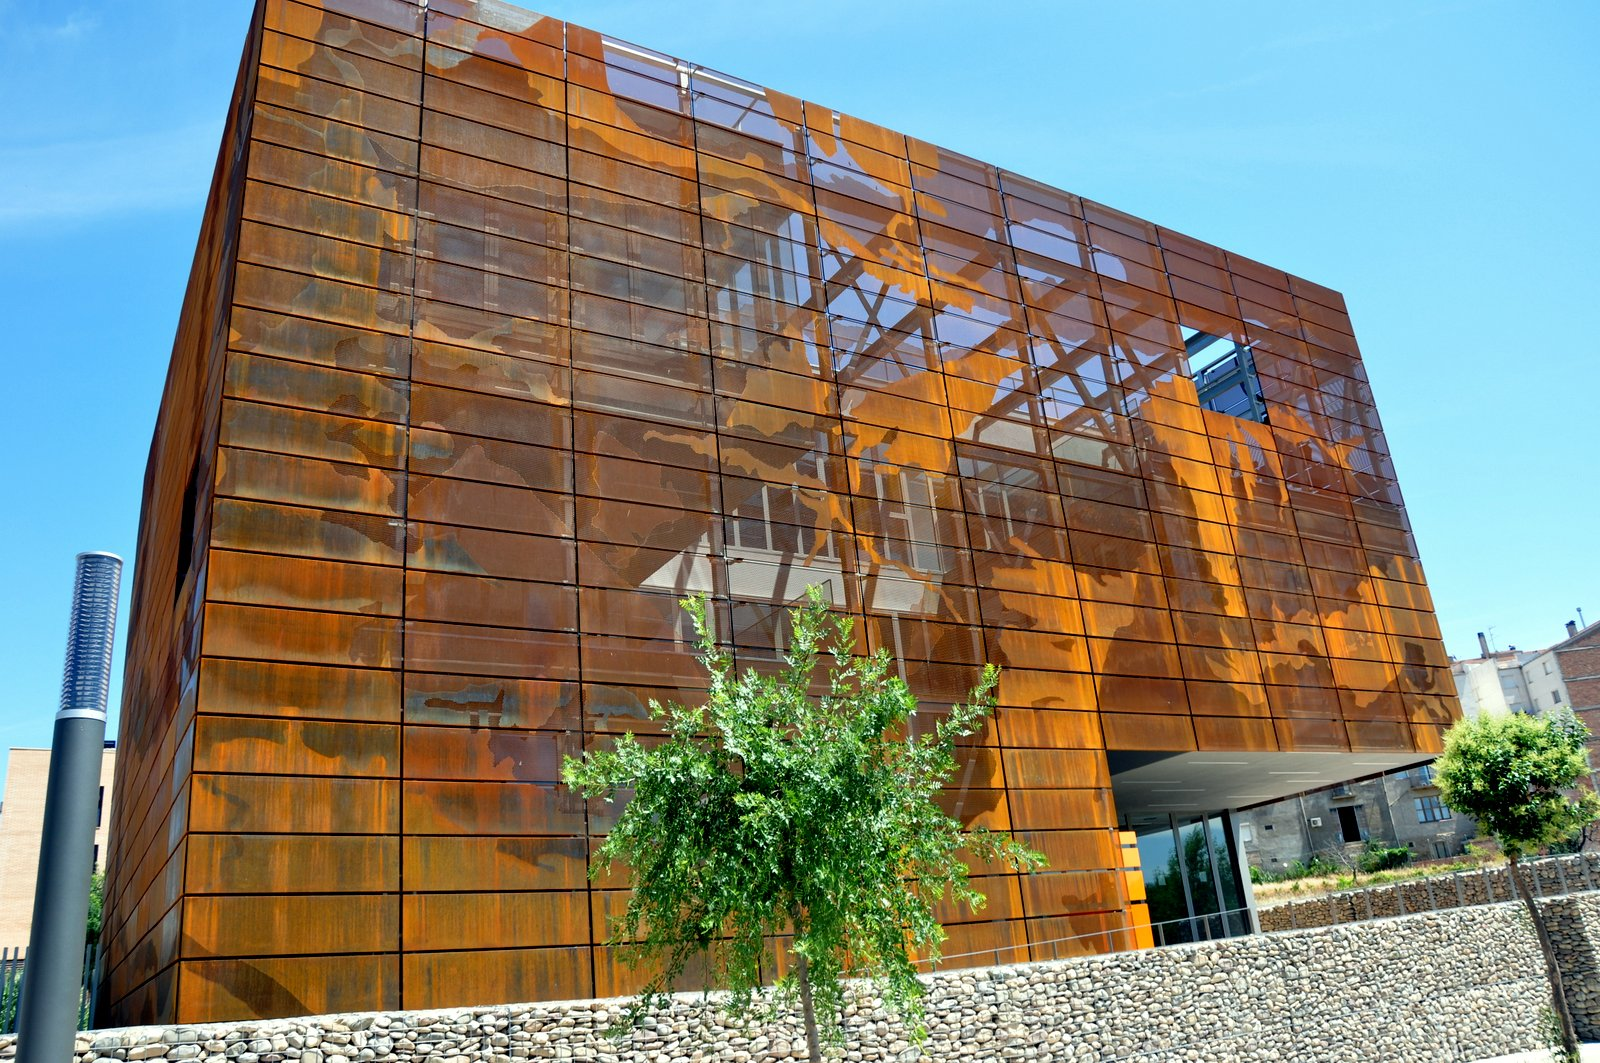 Acier Corten Perforé Imar Arquitectura And Metal Architecture And Metal